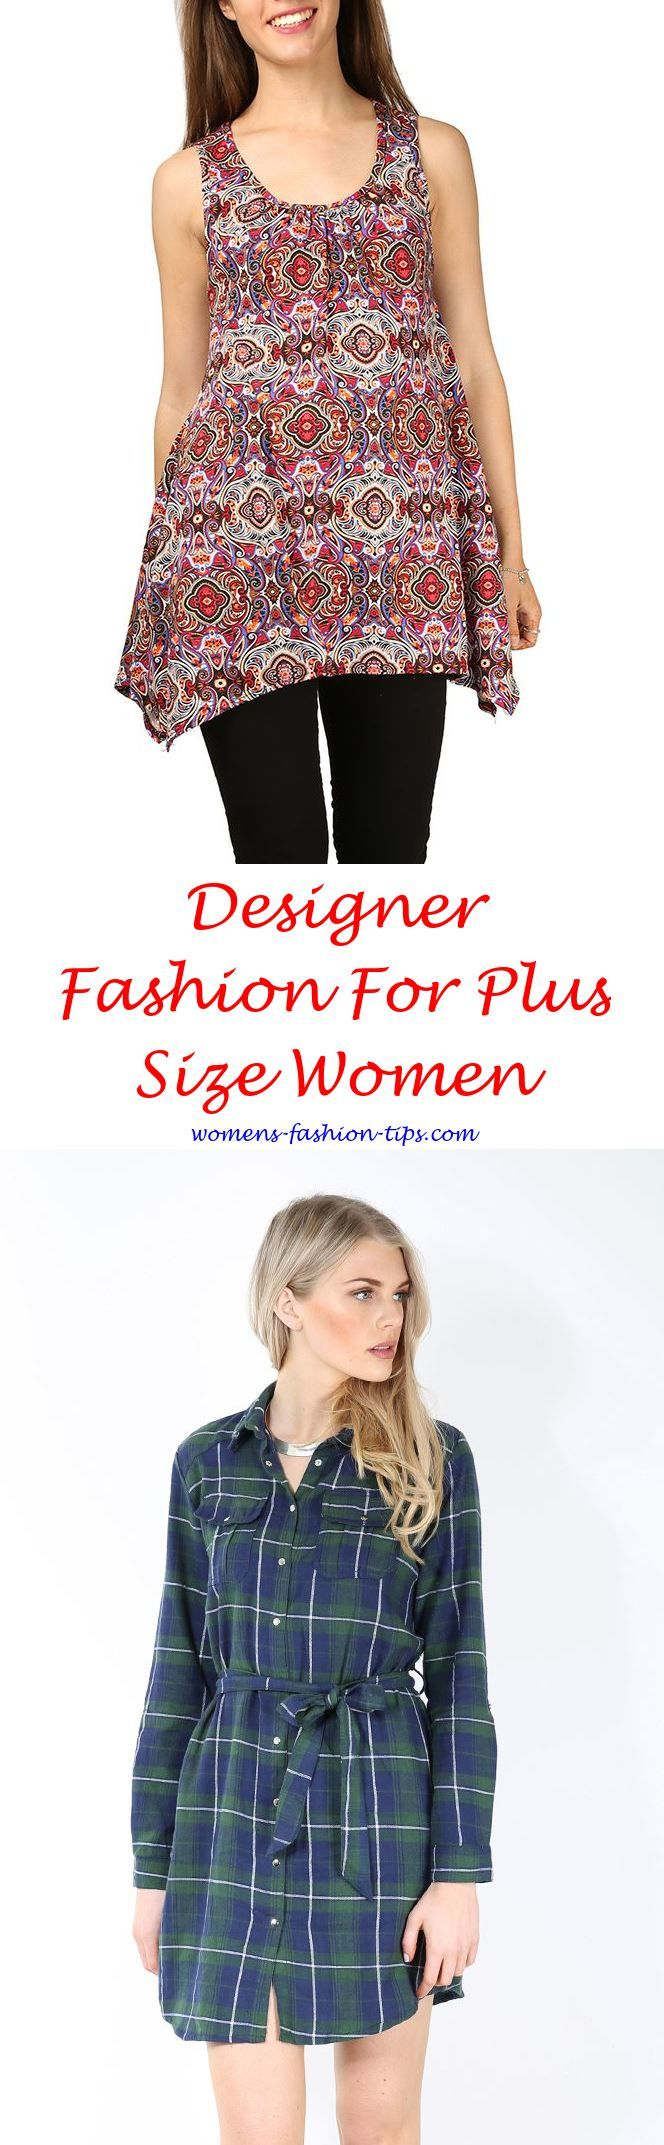 nigerian women fashion - business fashion for women.biker fashion women nike women fashion shoes winter women fashion 8186896740